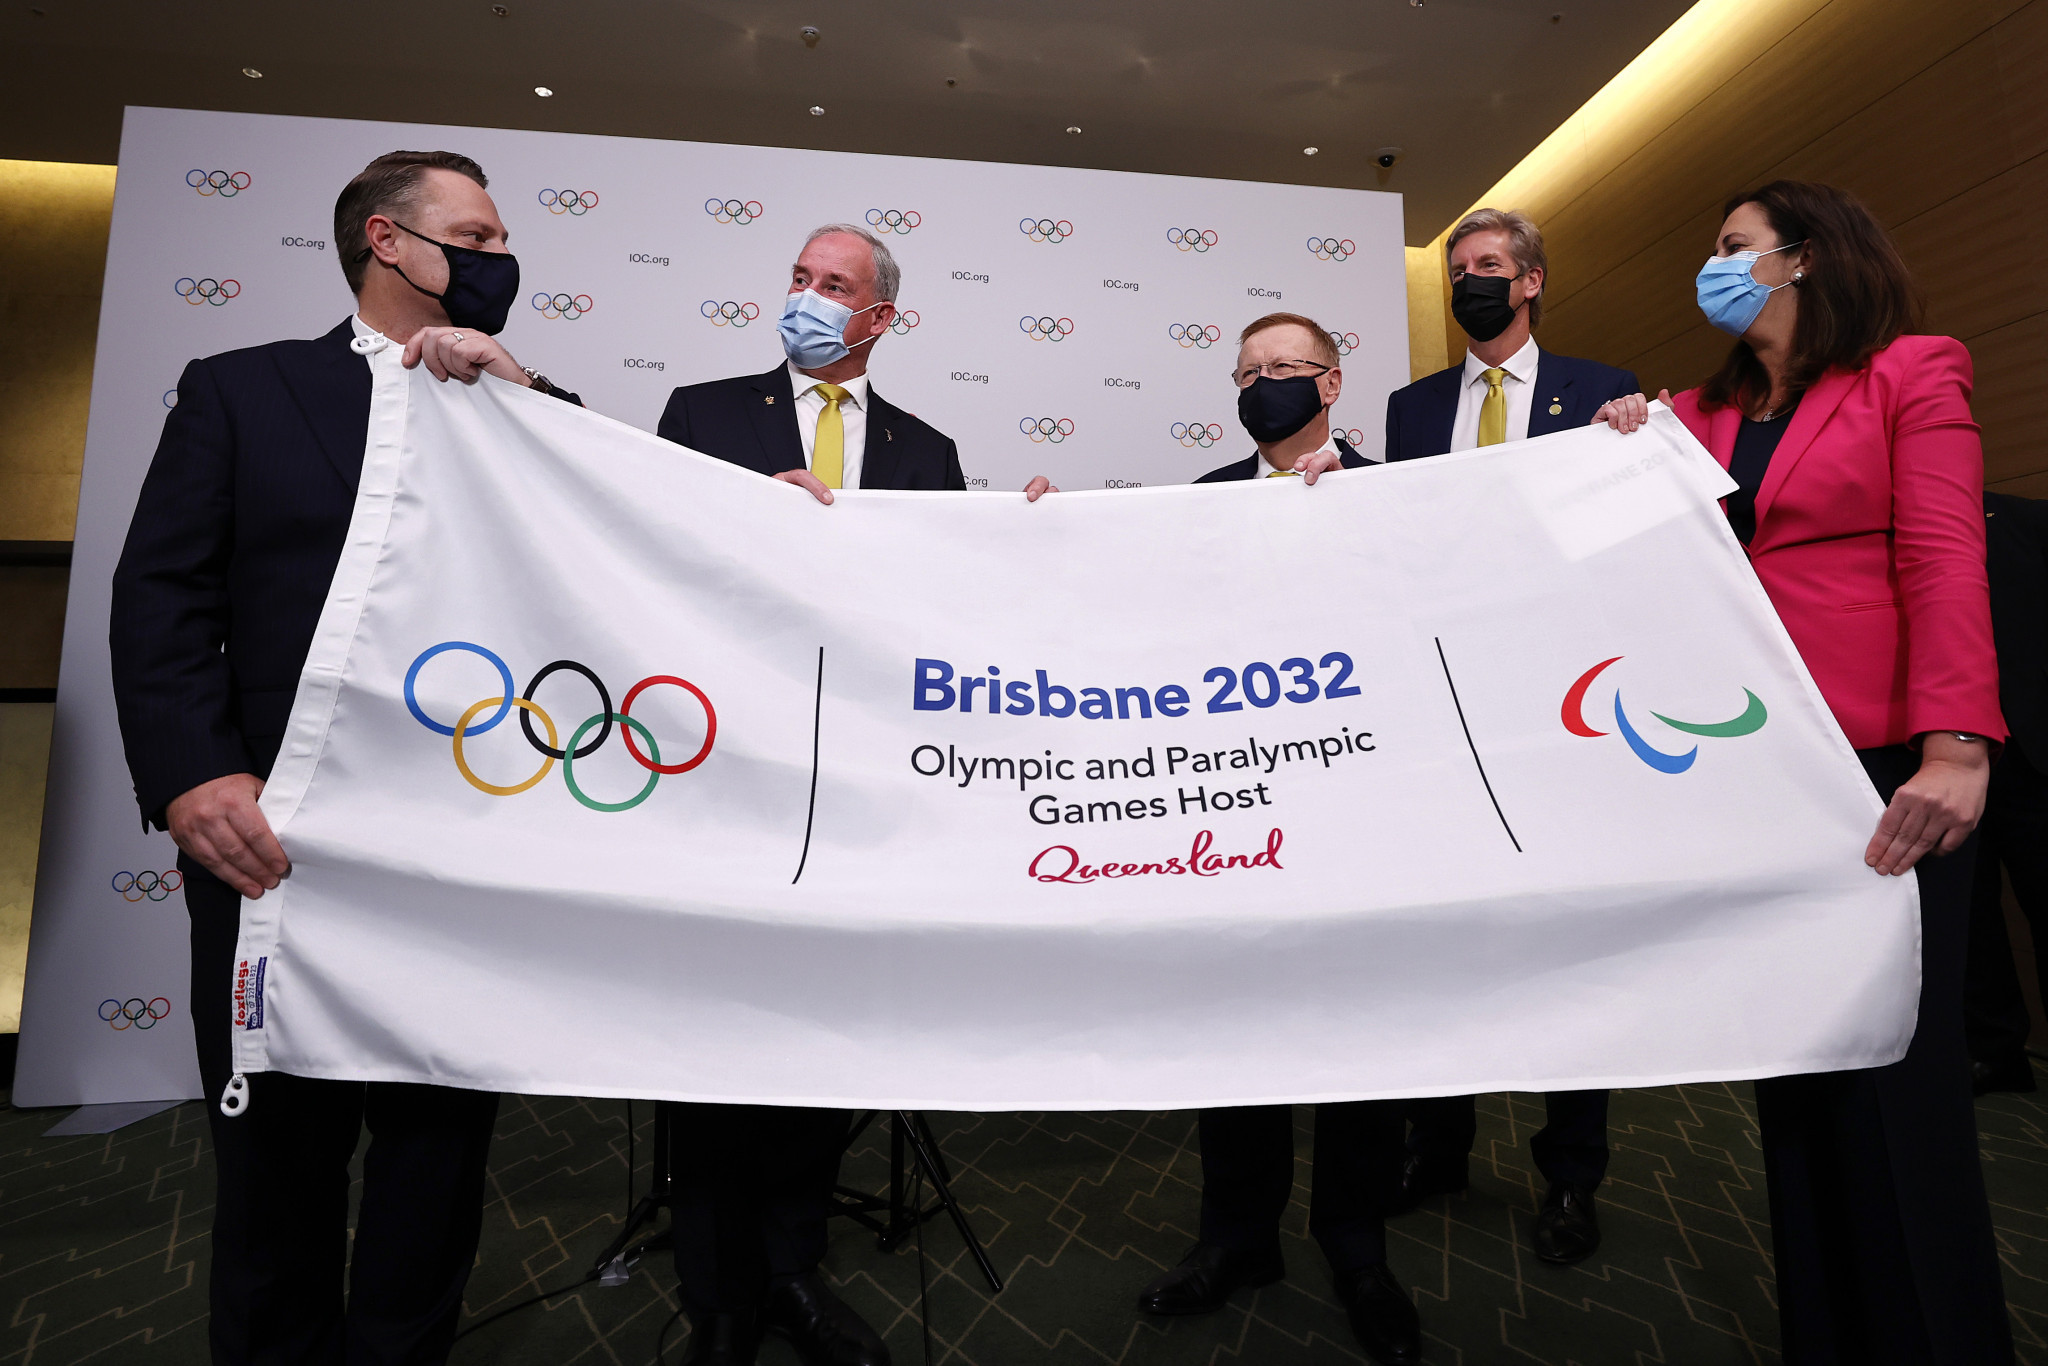 John Coates, third right, is expected to remain closely involved in the organisation of Brisbane 2032 on a consultancy basis ©Getty Images